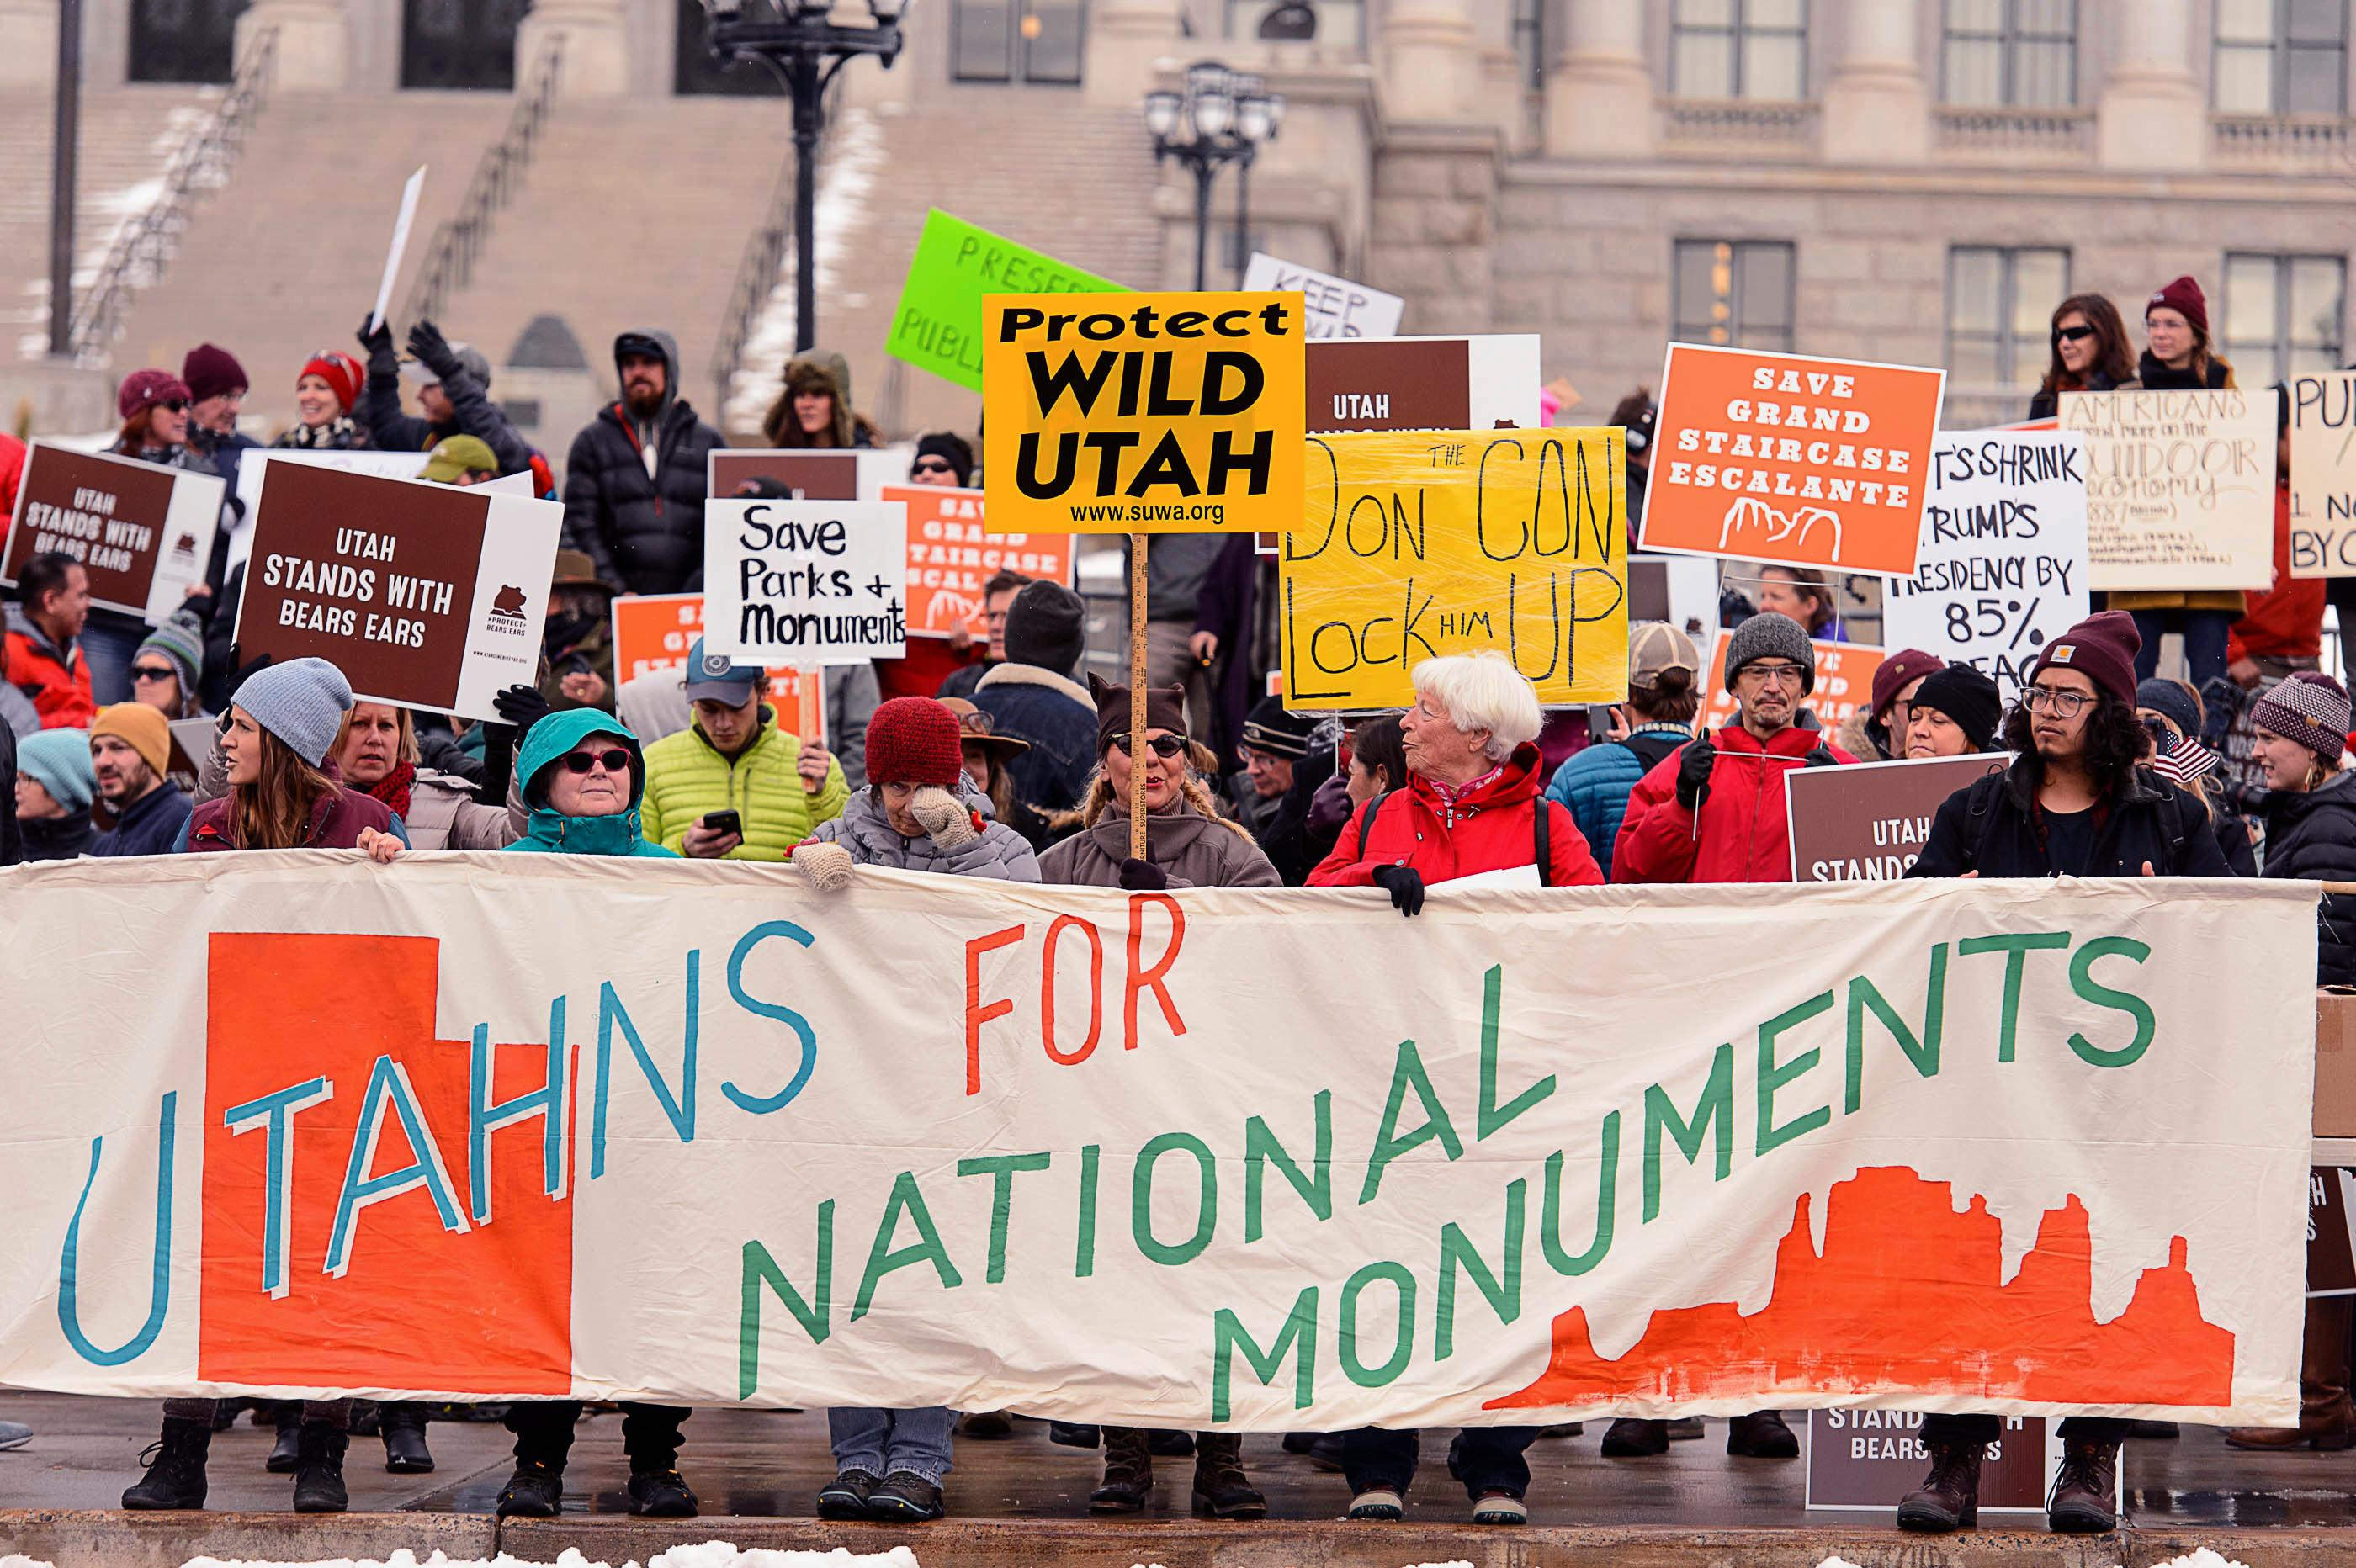 Protesters gather before a visit by President Donald Trump to announce that he is scaling back two sprawling national monuments, Monday Dec. 4, 2017, in Salt Lake City. (Trent Nelson/The Salt Lake Tribune via AP)